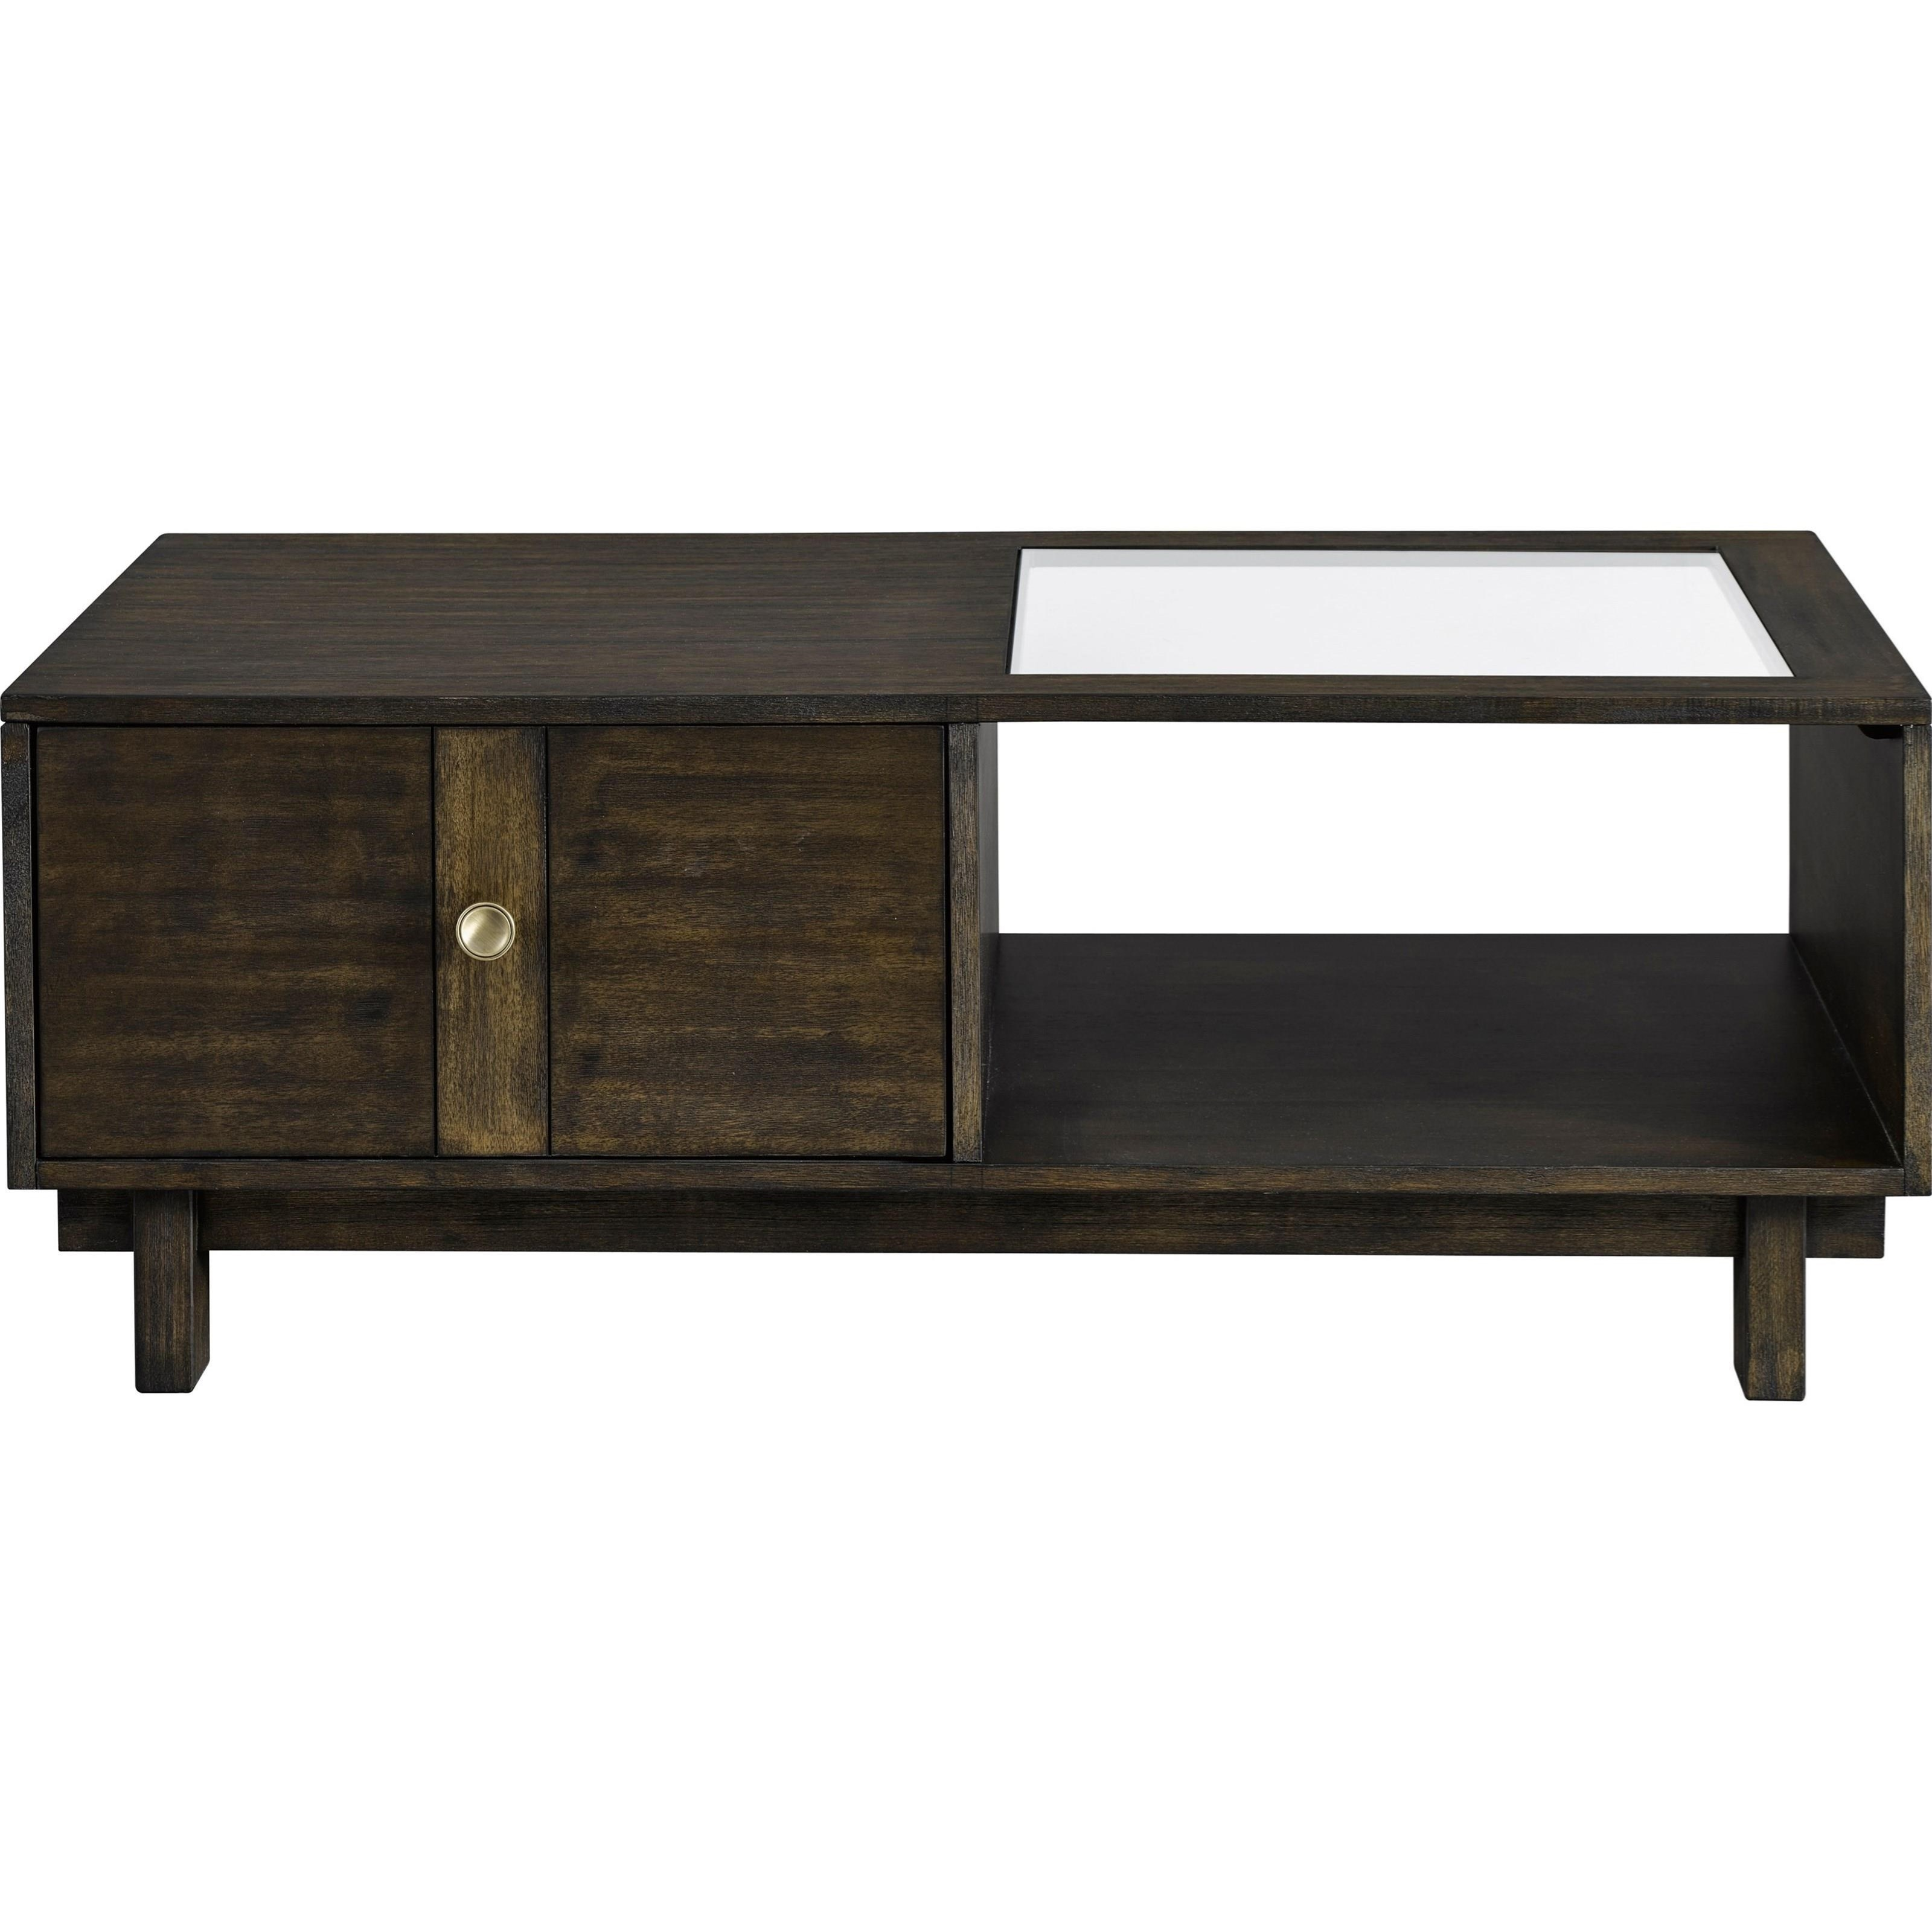 Broyhill Furniture Blythewood Contemporary Cocktail Table With Glass Insert